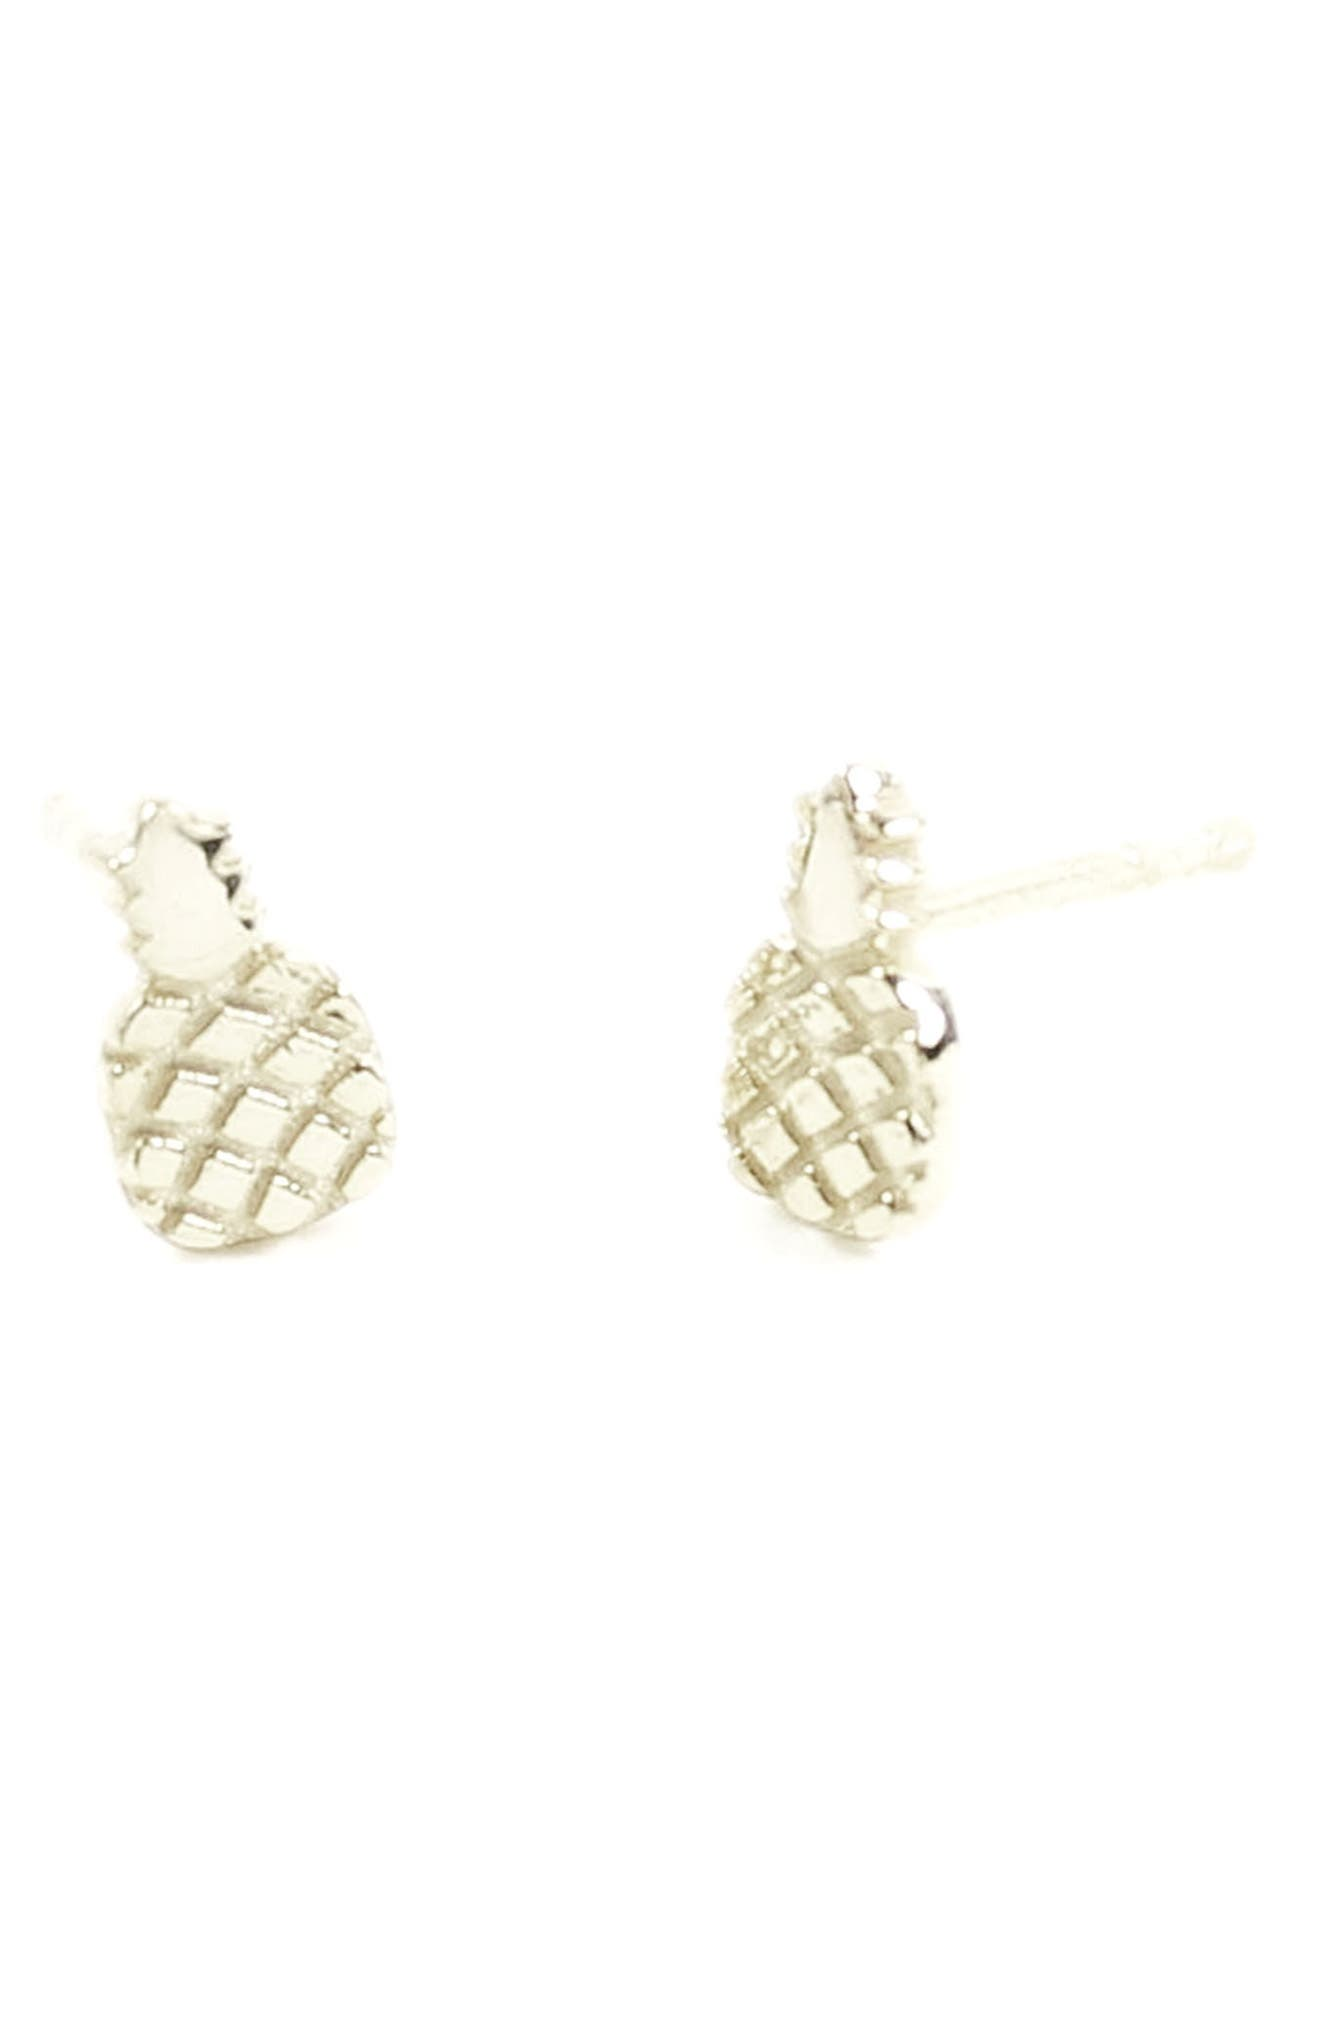 Kris Nations Pineapple Stud Earrings